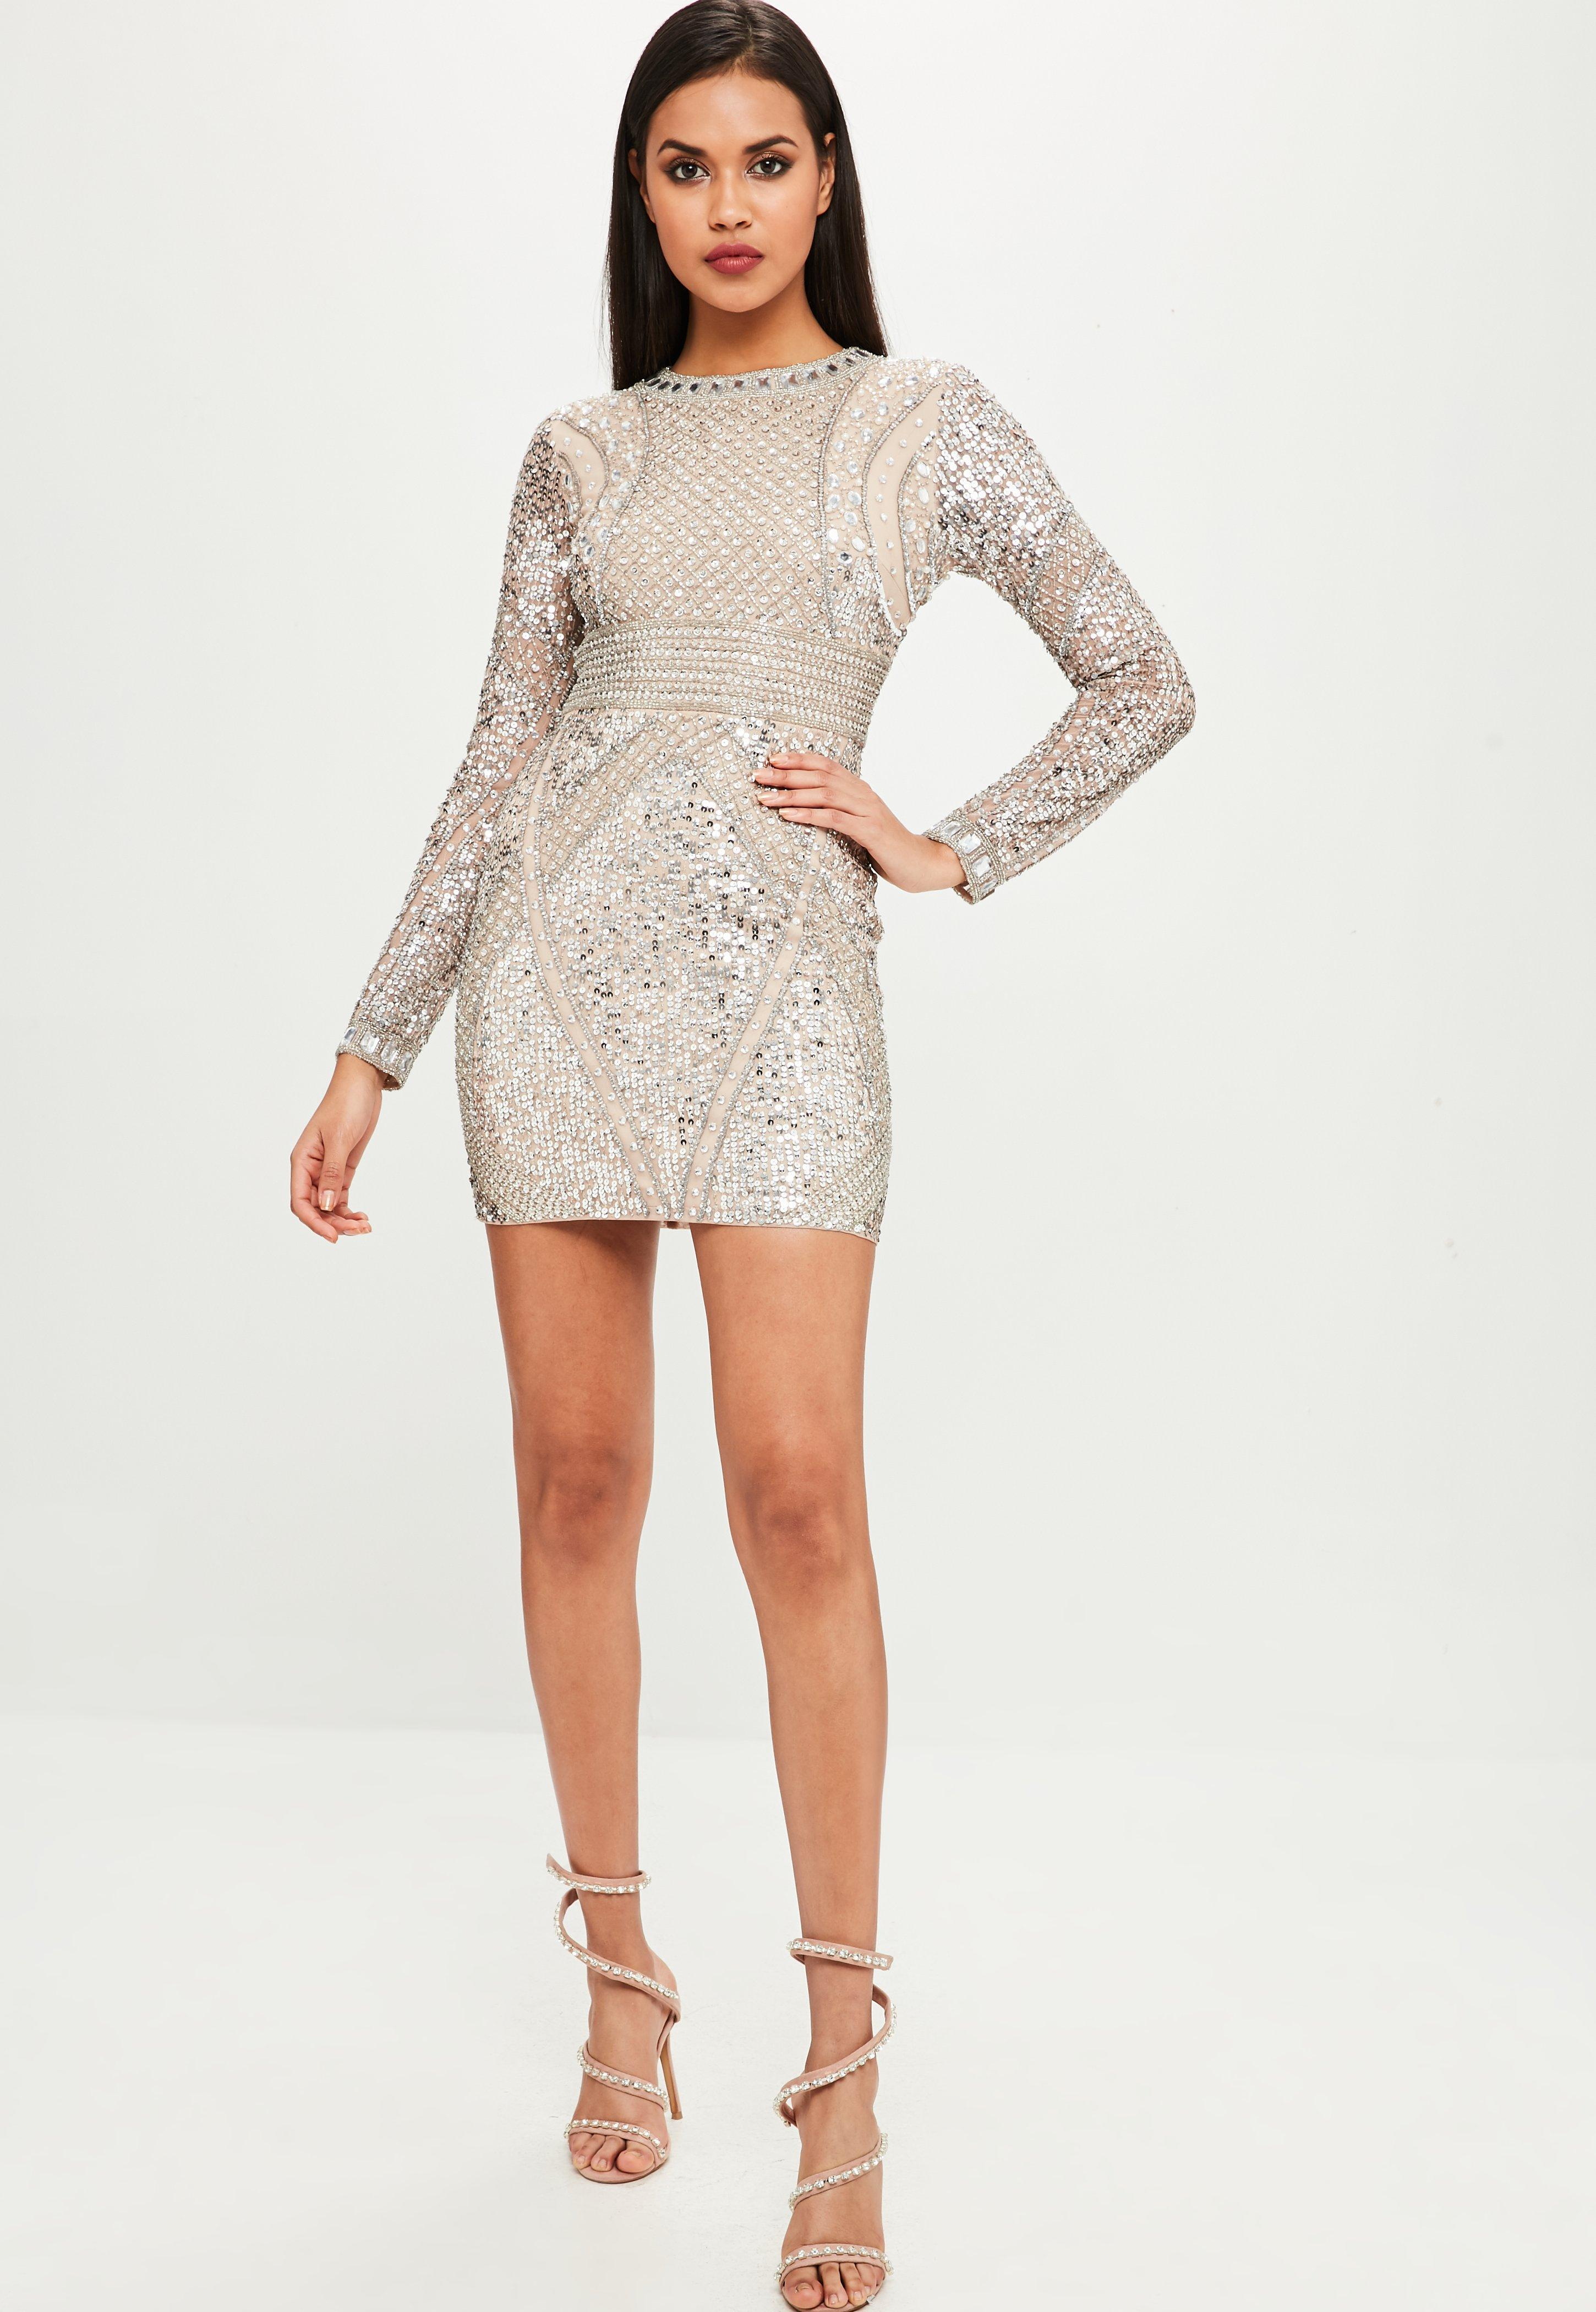 86aa109fe9 Missguided Carli Bybel X Nude Embellished Mini Dress in Natural - Lyst